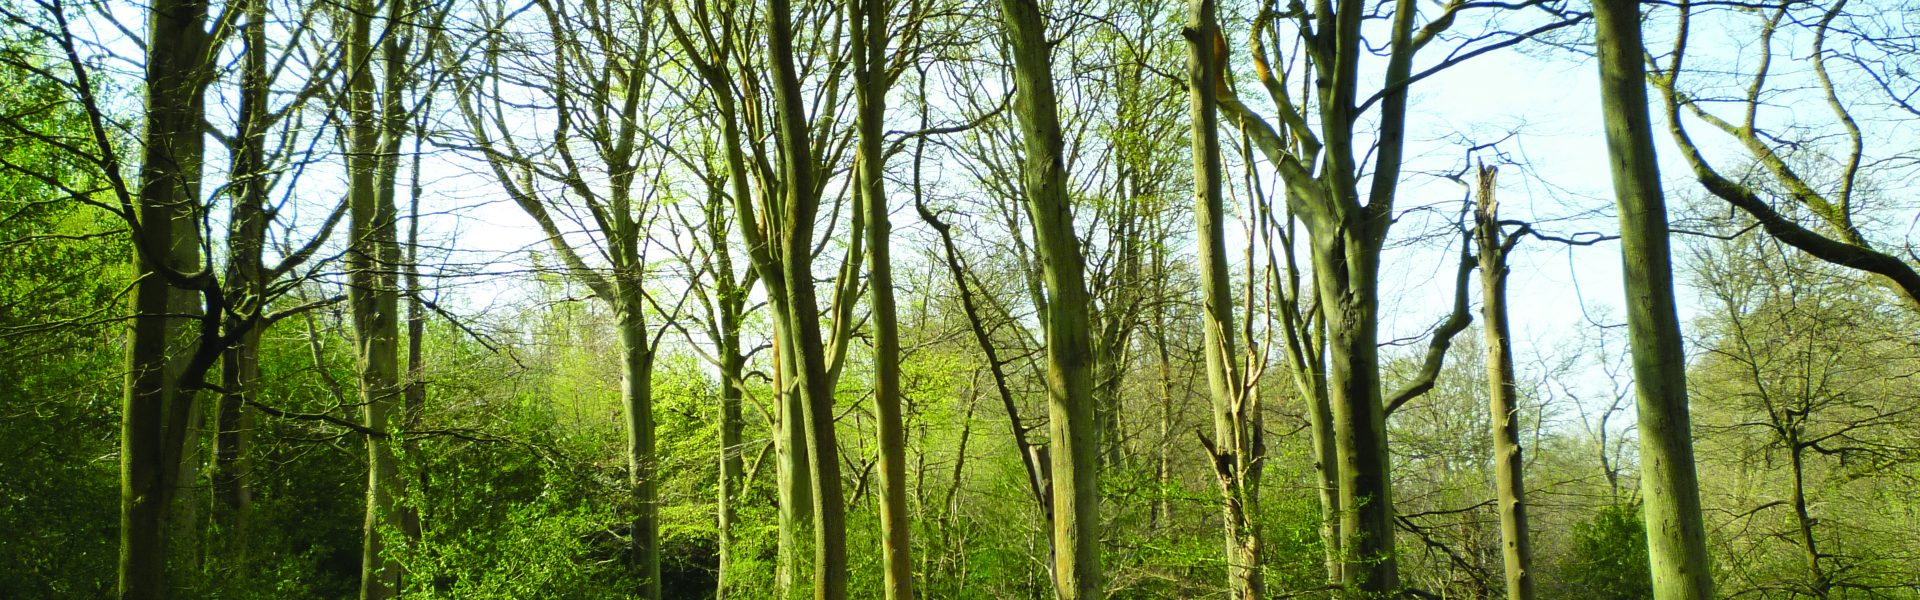 Beeches of Whortleberry Wood, Southborough Common